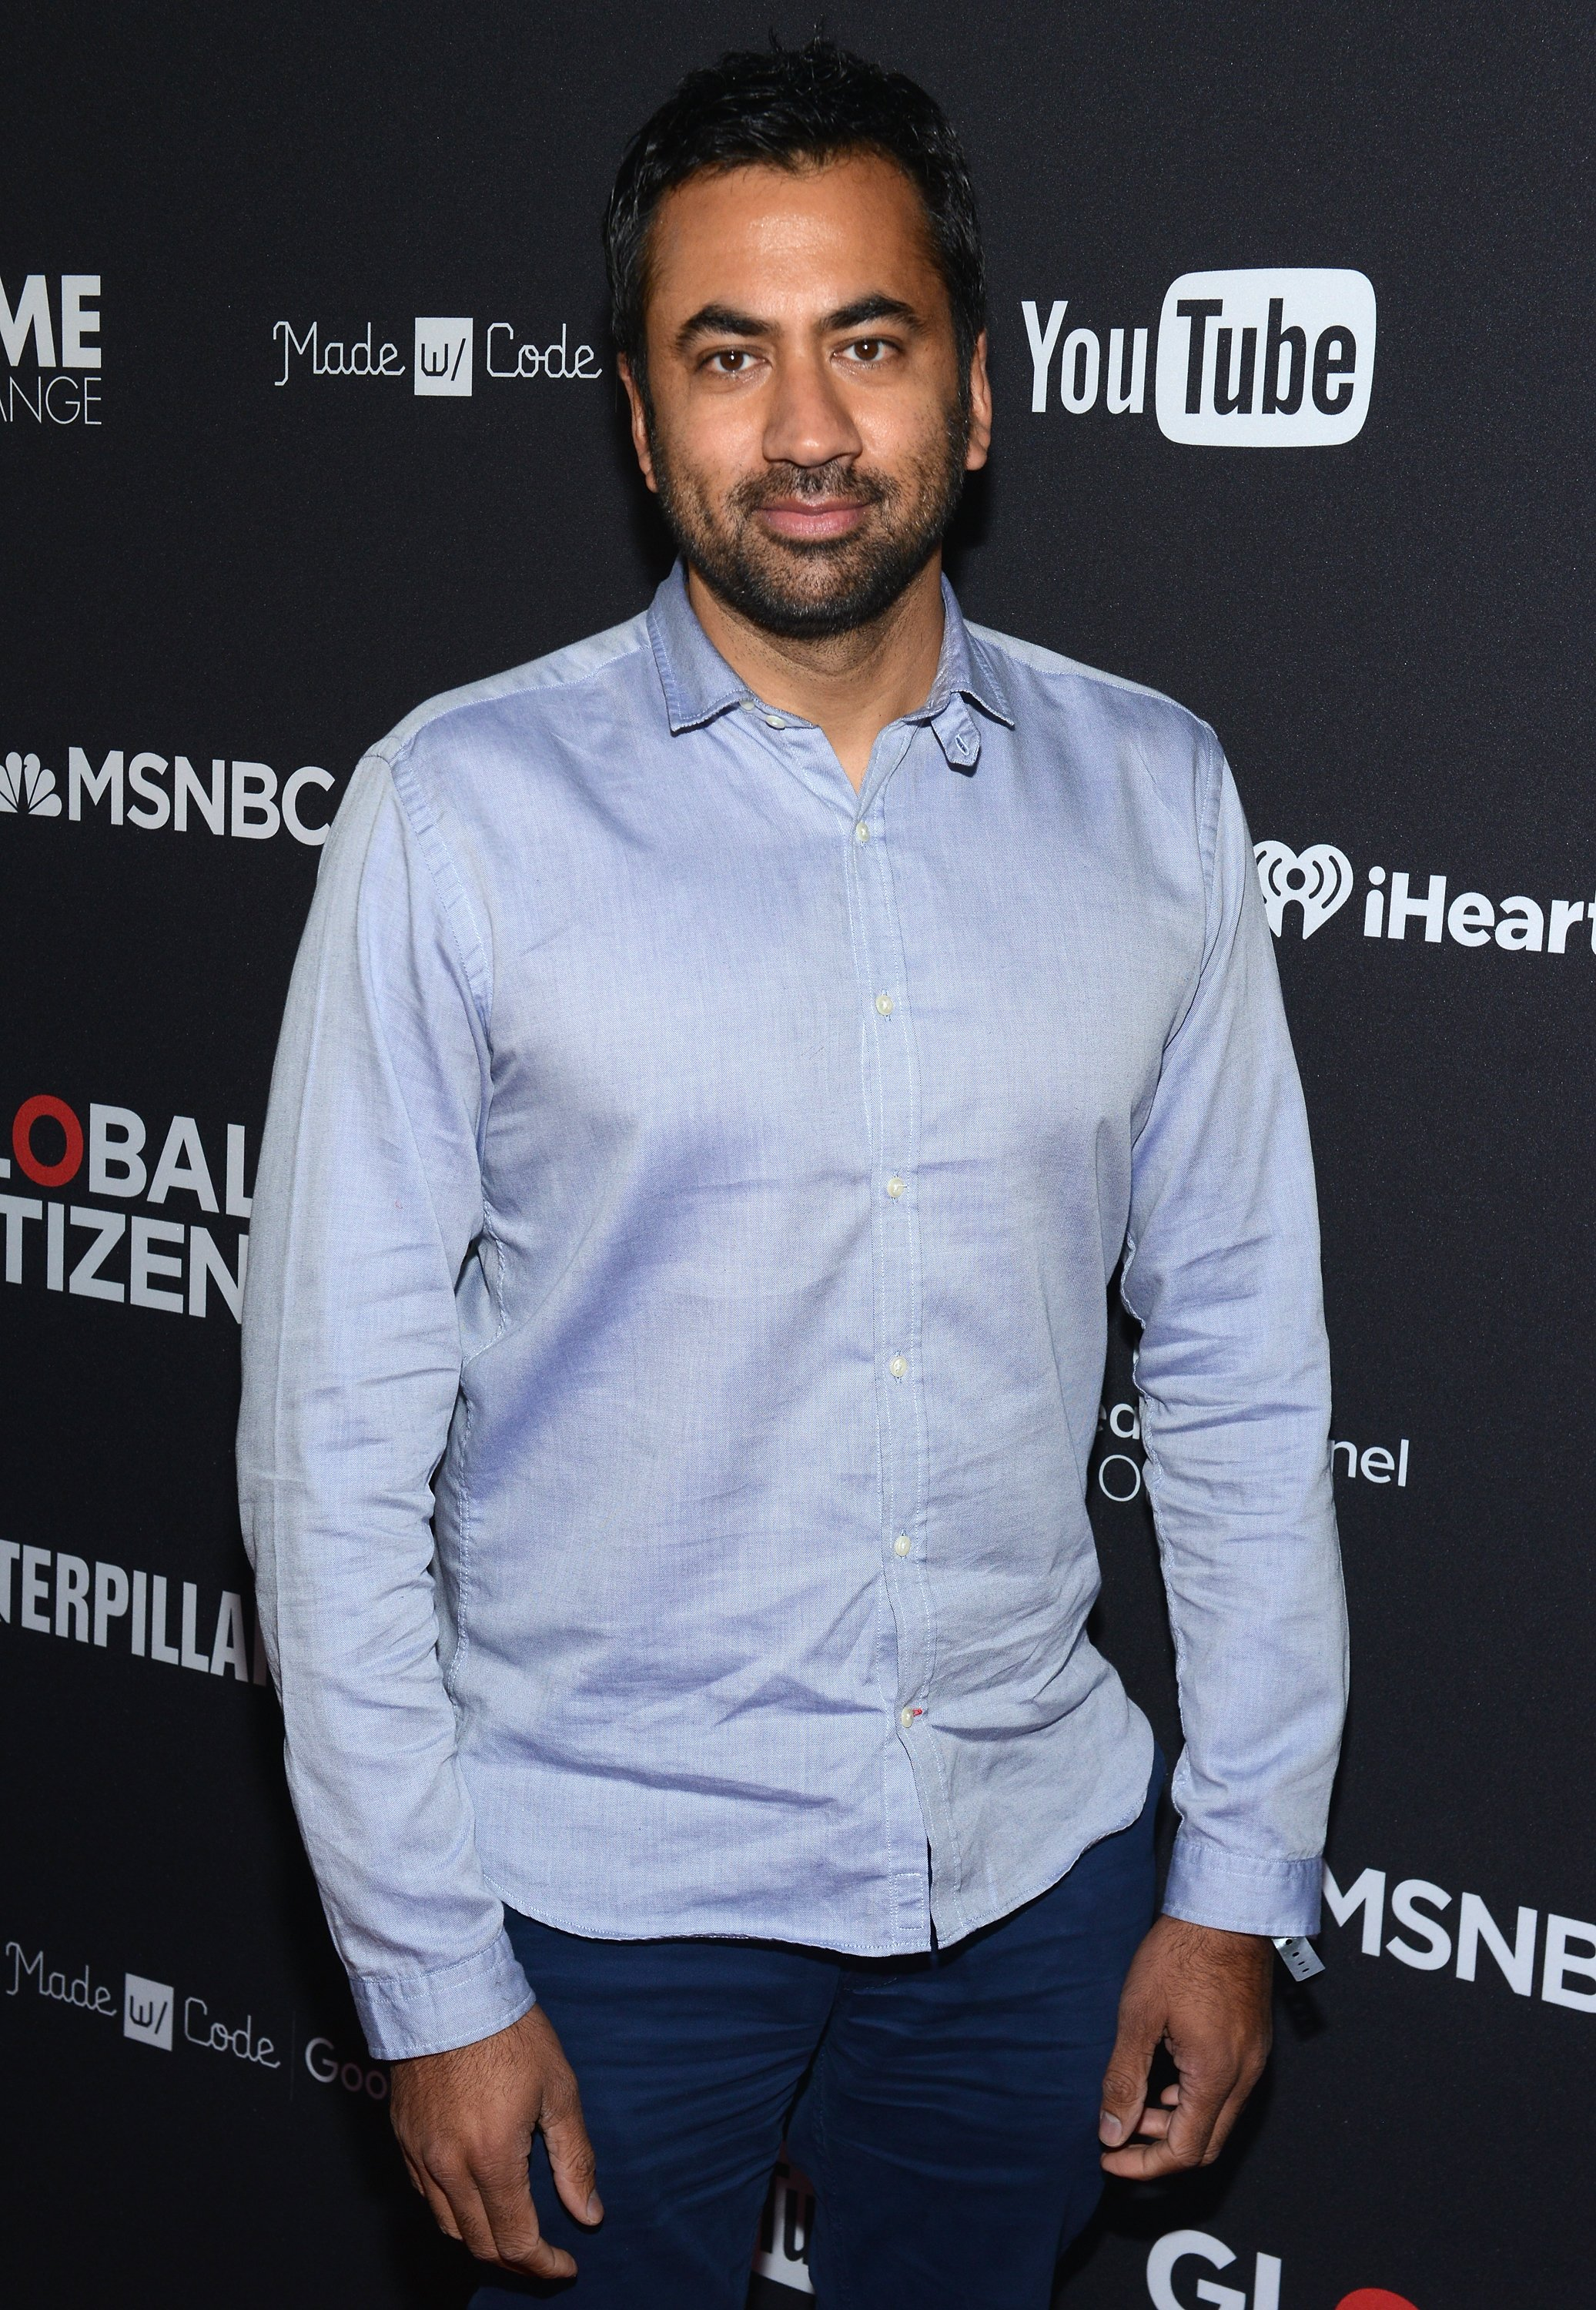 Kal Penn attends the 2016 Global Citizen Festival In Central Park To End Extreme Poverty By 2030 at Central Park on September 24, 2016 in New York City